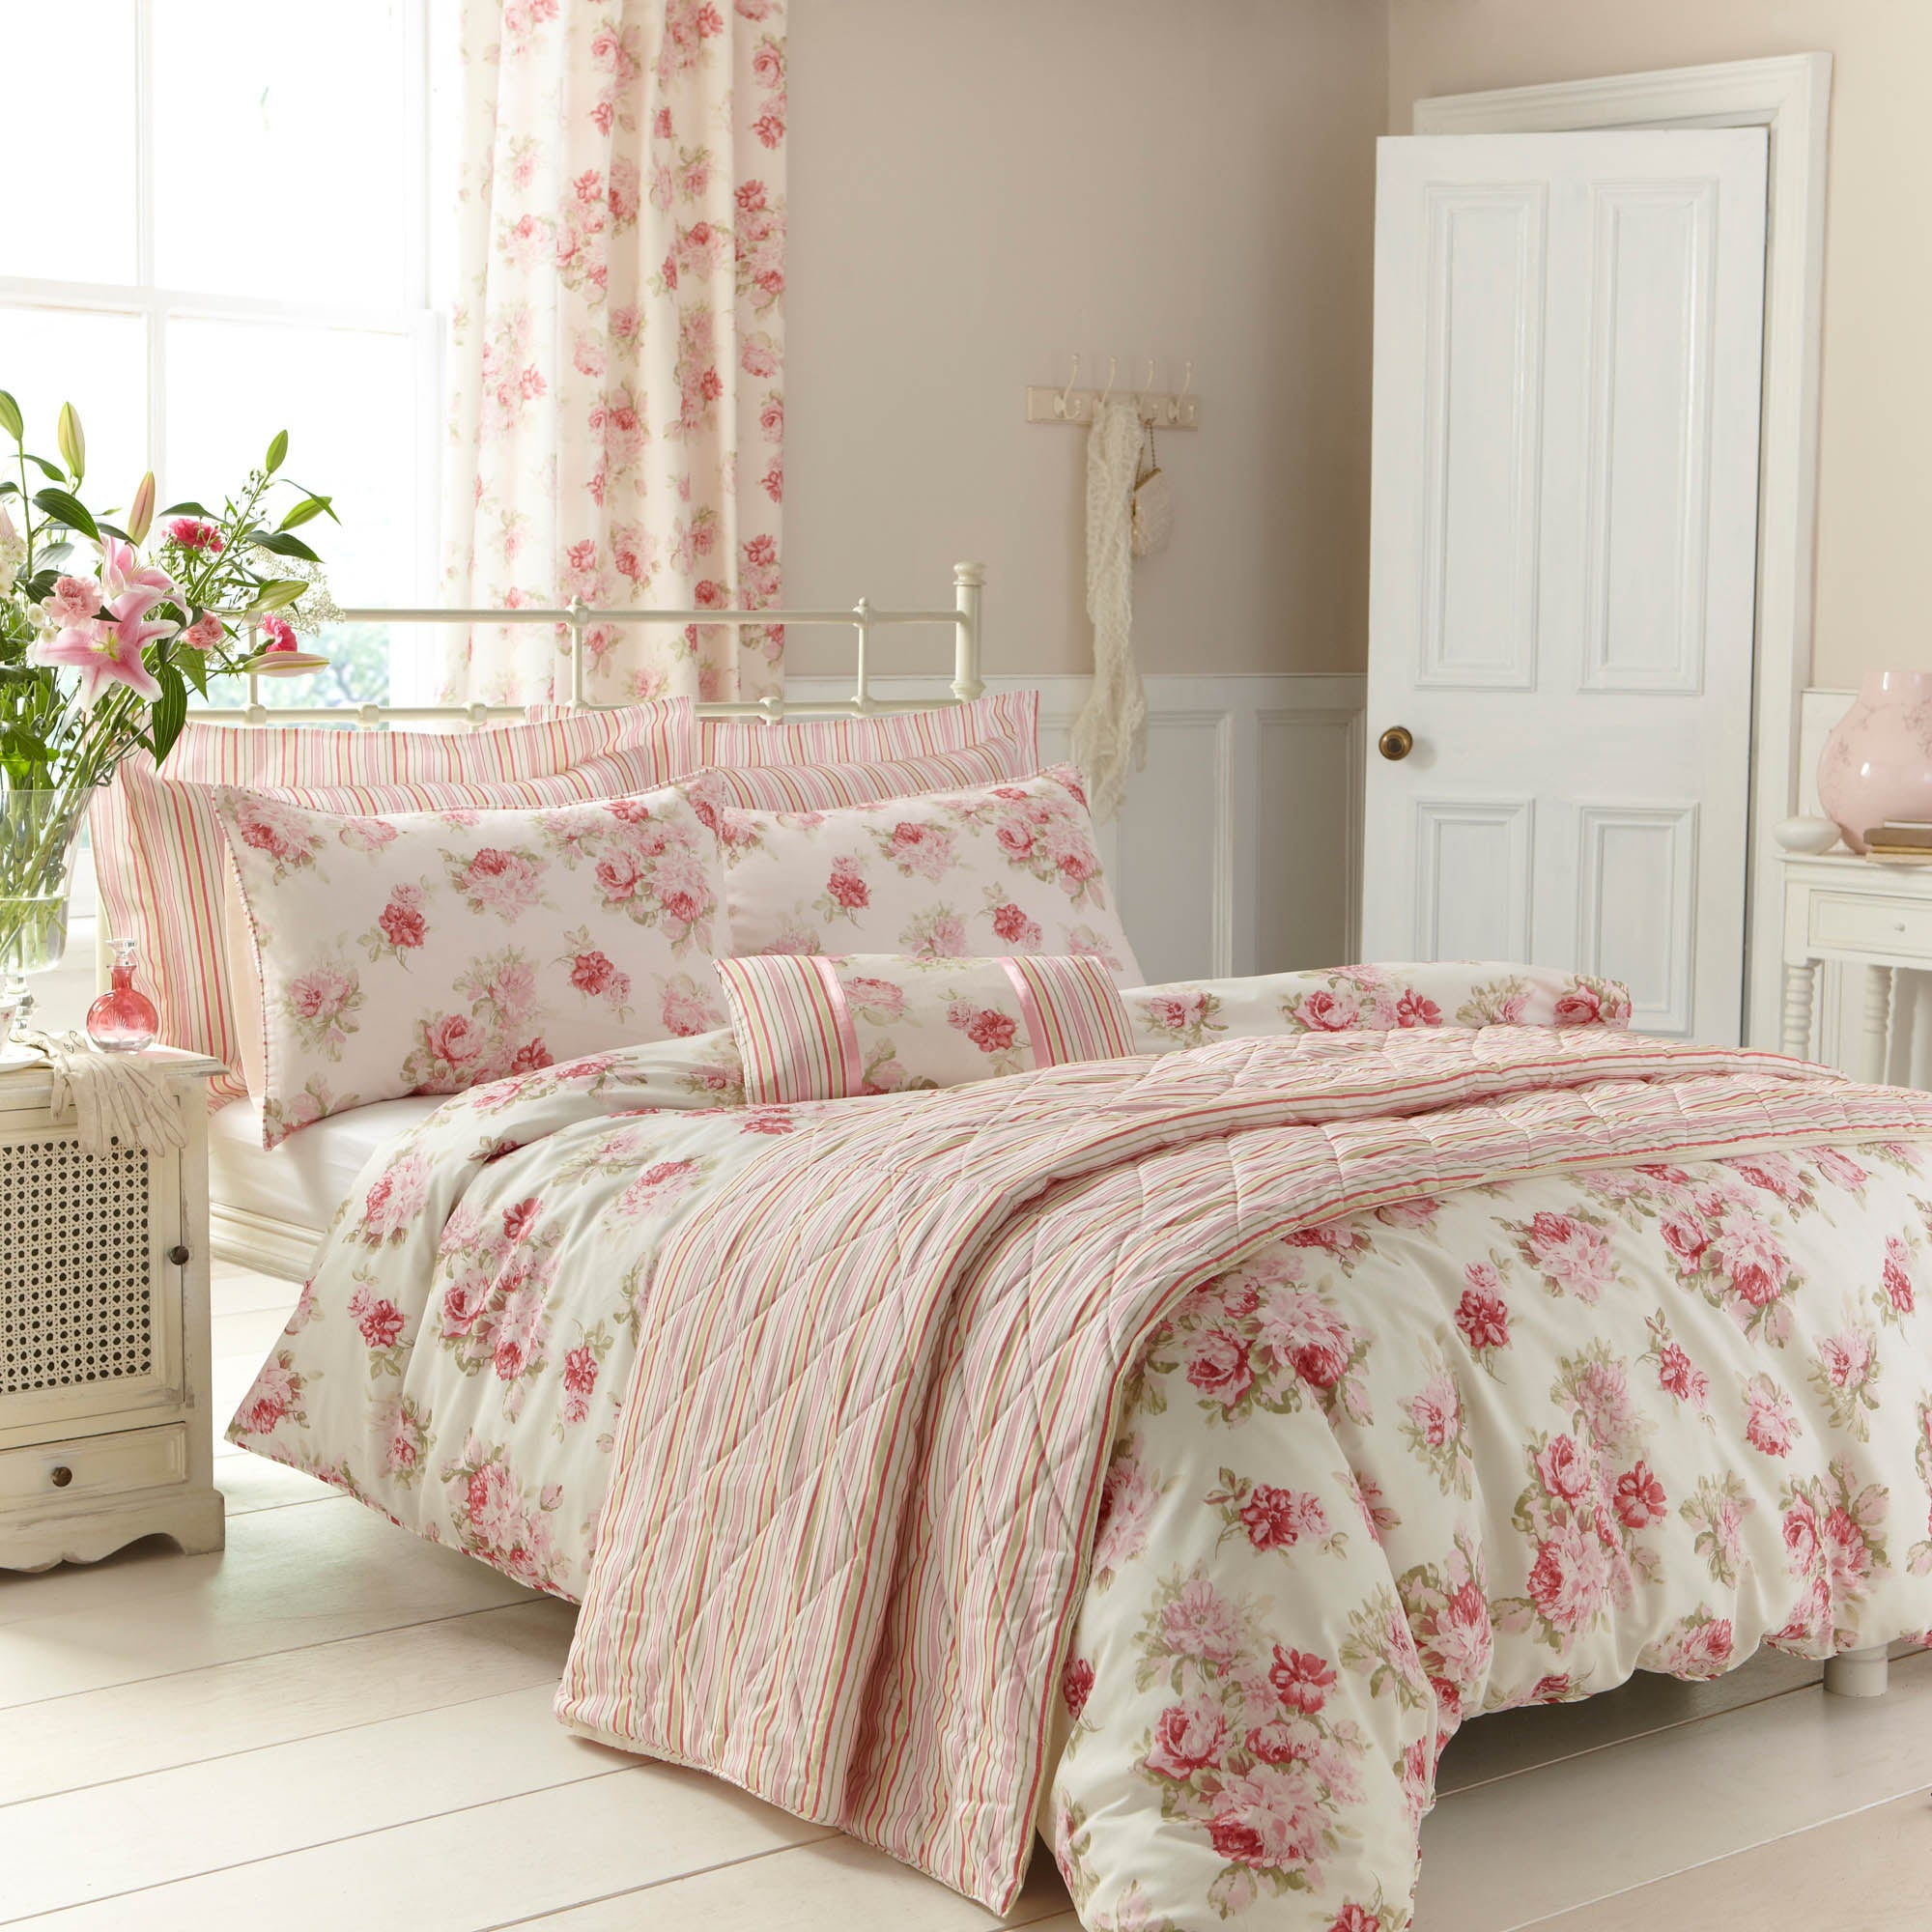 Image of Annabella Pink Duvet Cover and Pillowcase Set Pink